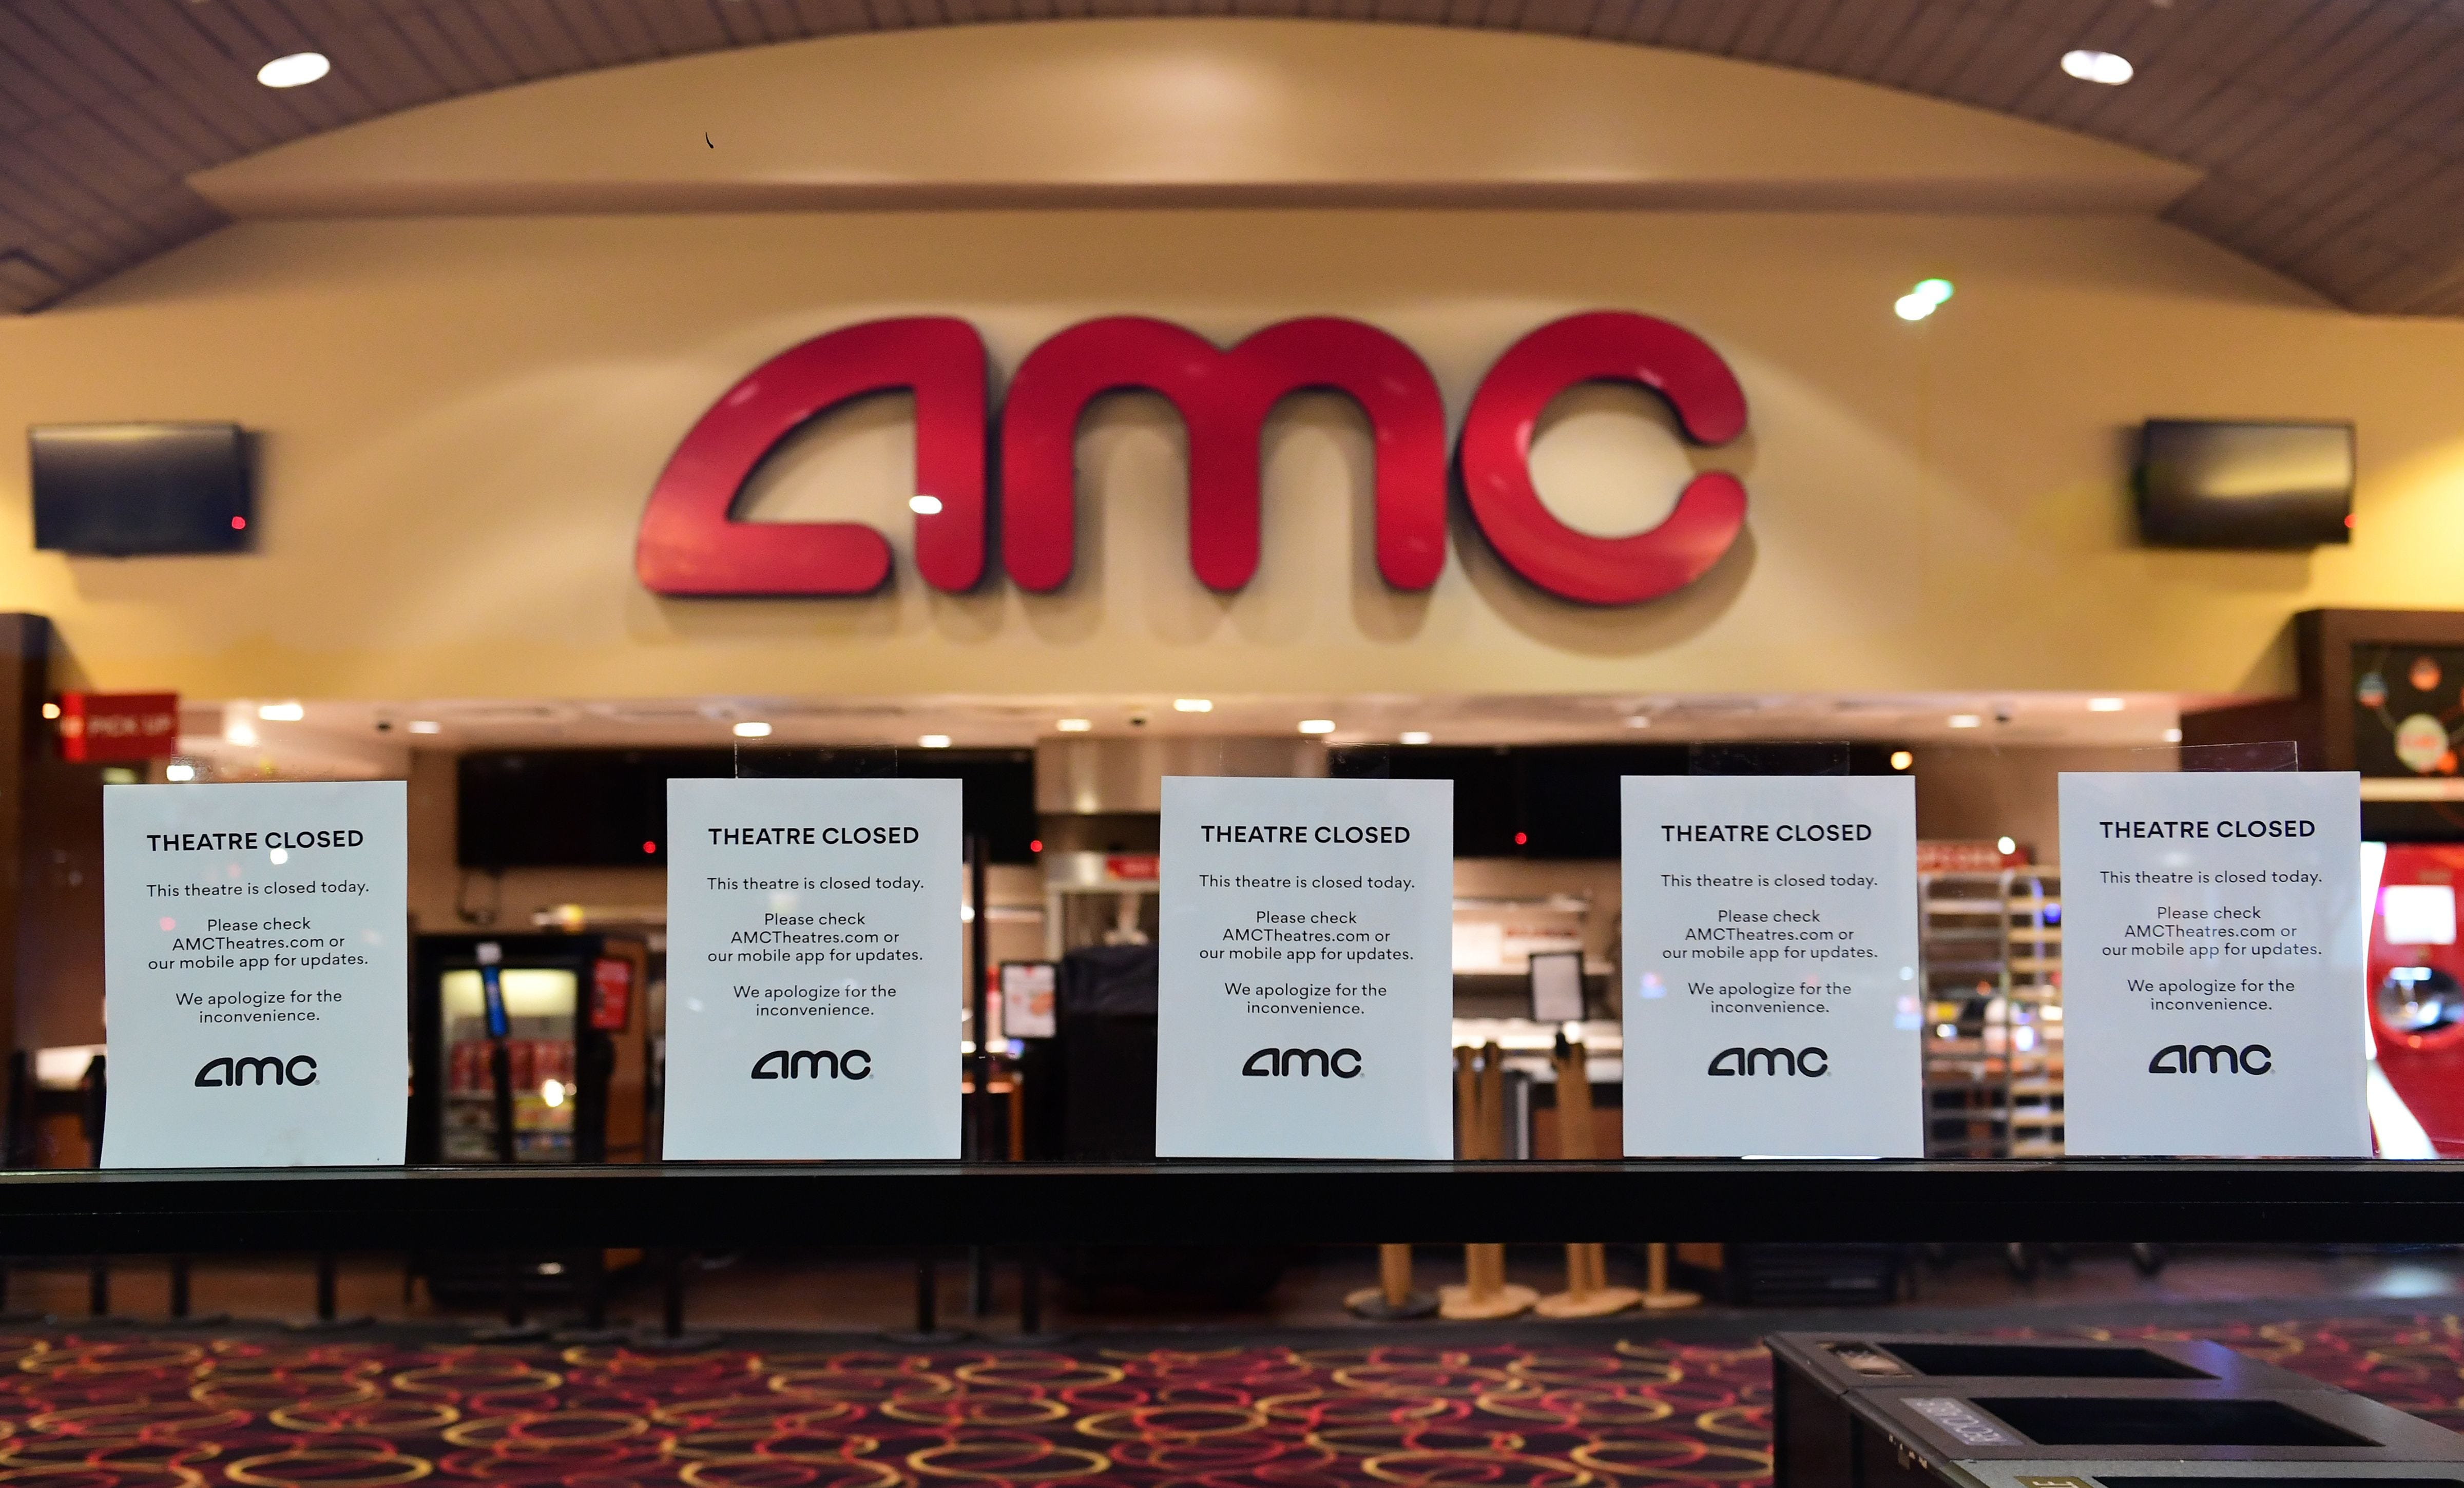 Movie theaters have been shuttered for weeks because of the coronavirus pandemic. Under a Trump administration plan, they may be able to reopen with strict social distancing protocols.